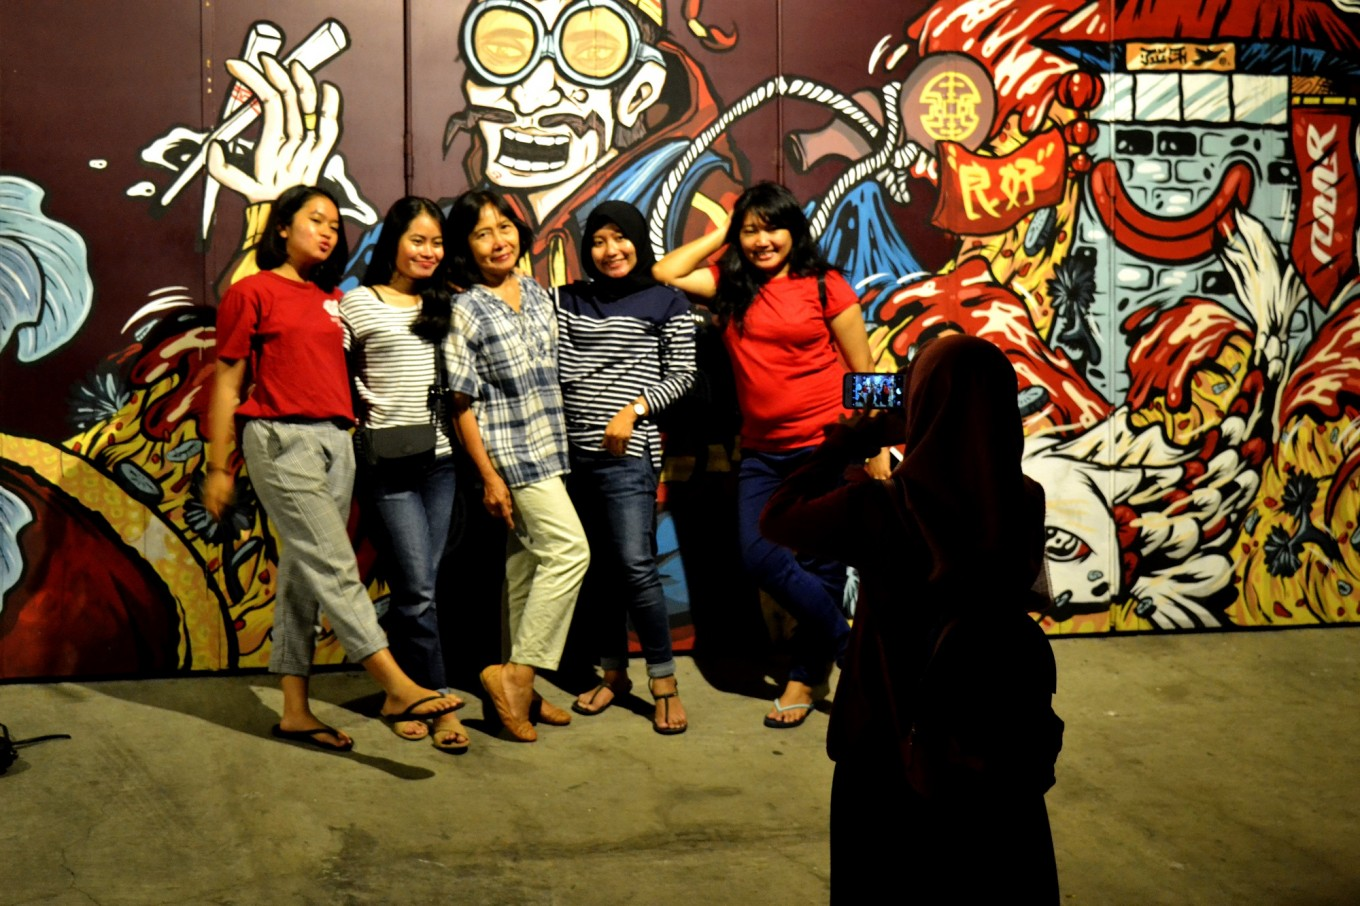 Residents take a selfie in front of a mural.